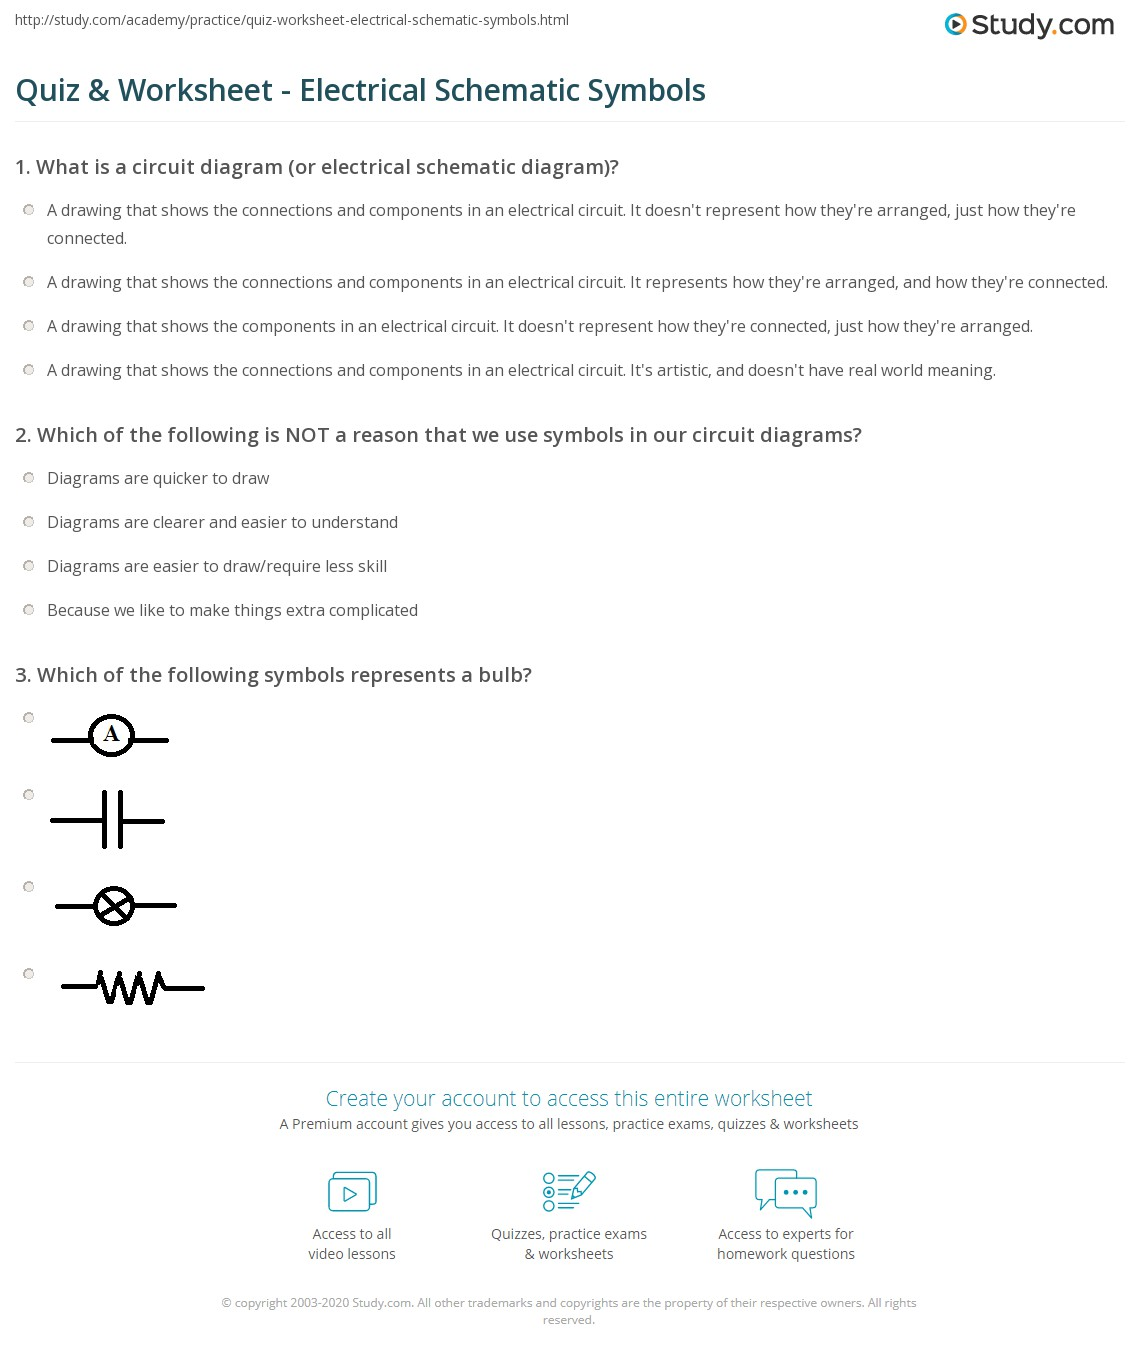 quiz worksheet electrical schematic symbols study com rh study com Circuit Symbols and Definitions Schematic Circuit Diagram